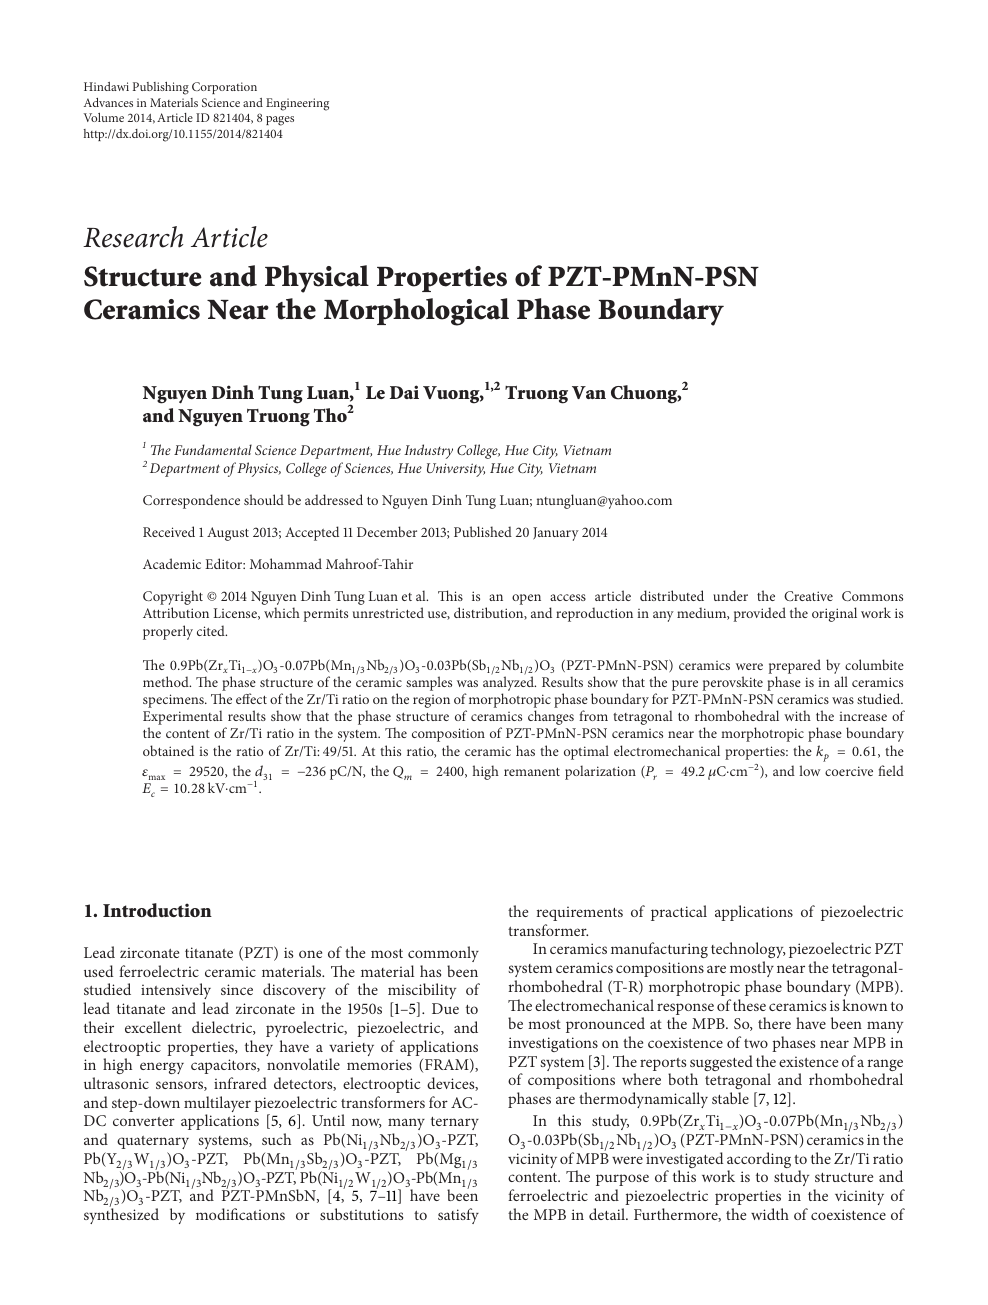 Structure and Physical Properties of PZT-PMnN-PSN Ceramics